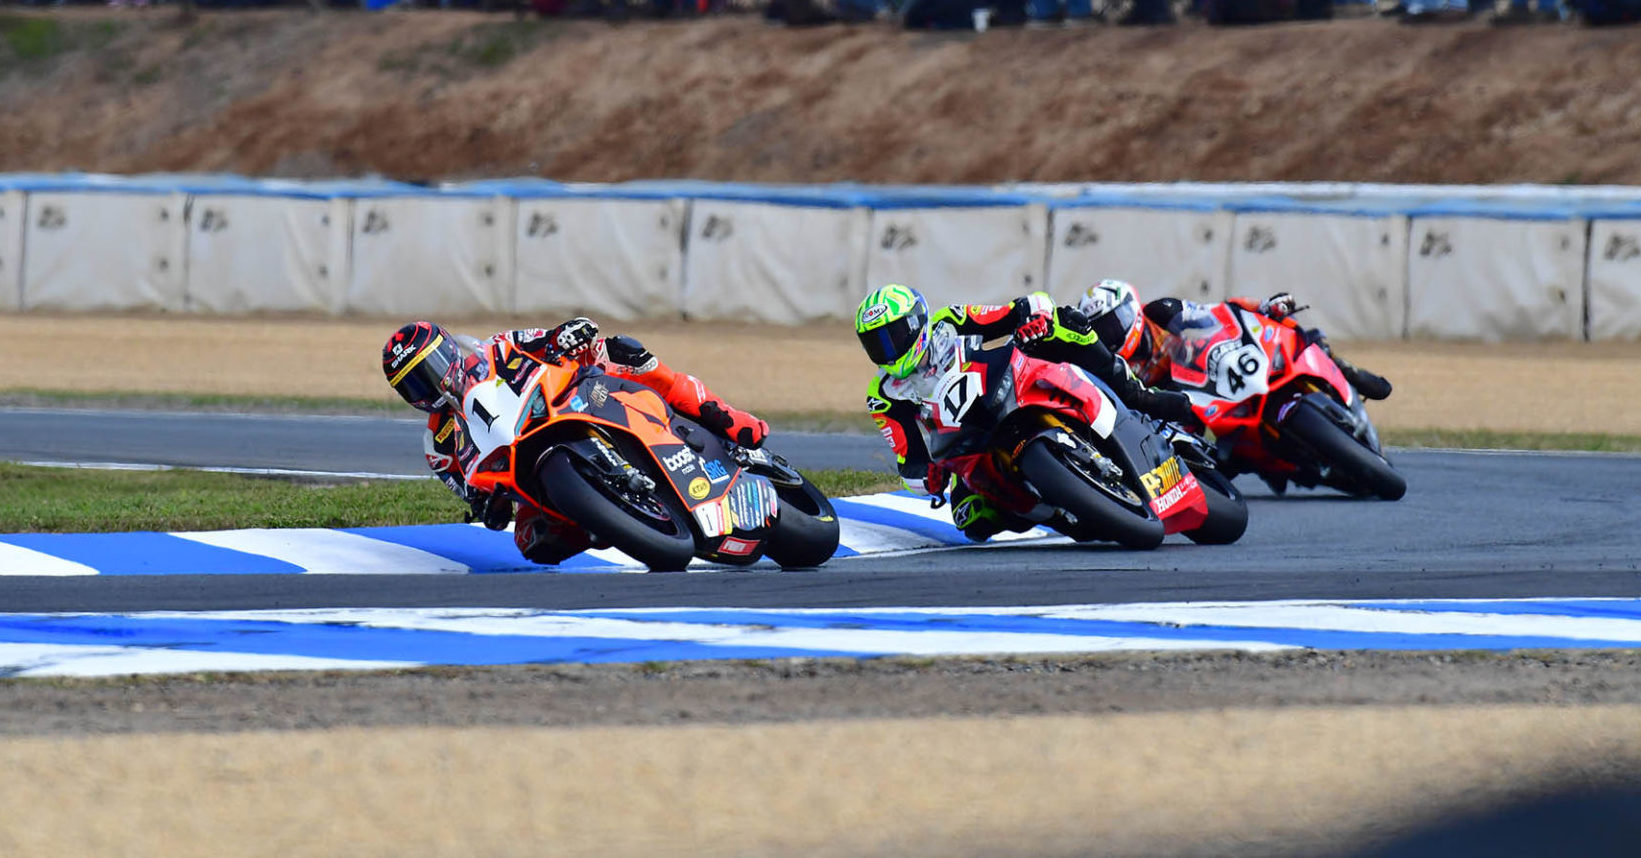 Wayne Maxwell (1), Troy Herfoss (17), and Mike Jones (46) in action at a previous ASBK round. Photo courtesy ASBK/Optikal.